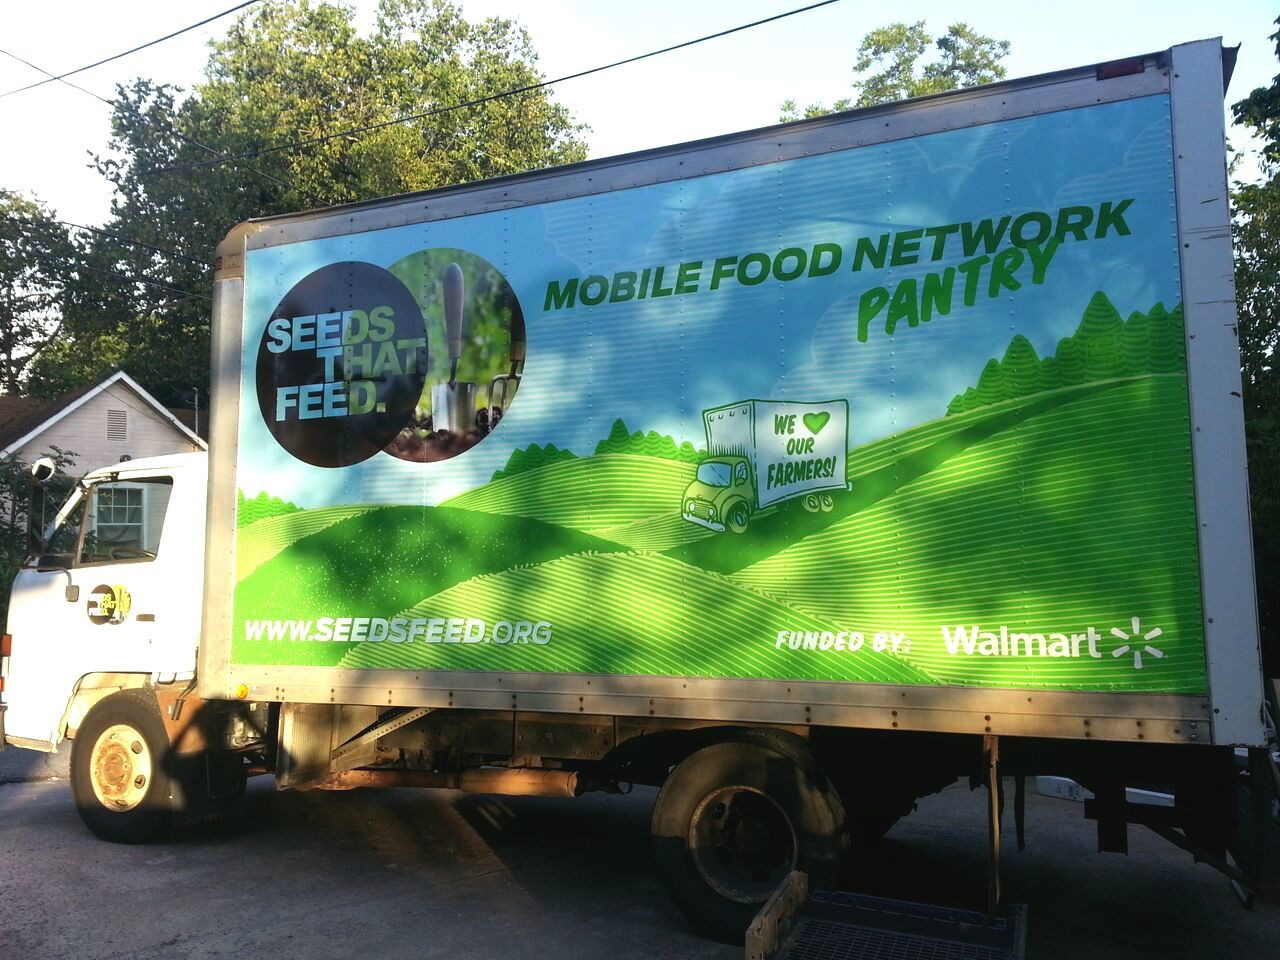 A large white box truck with the Seeds that Feed logo is parked on the road.